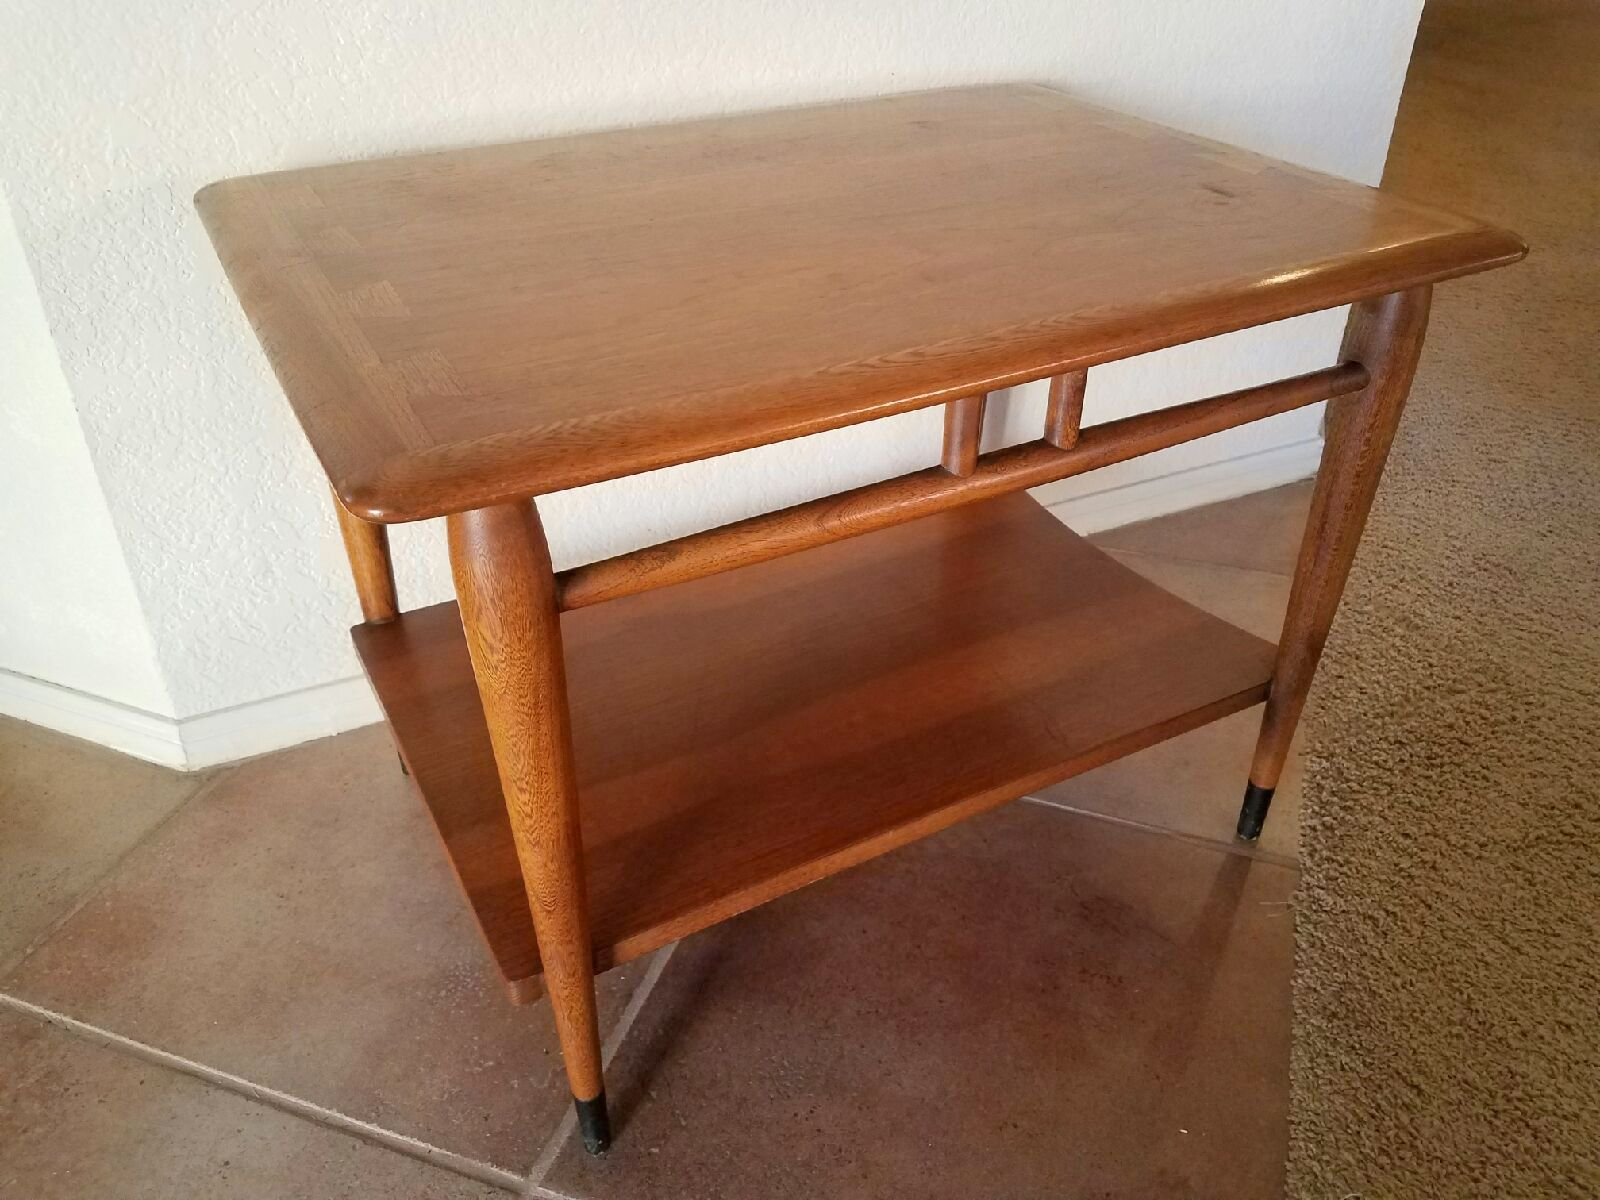 Lane Acclaim End Lamp Table Style No 0900 05 Dated 09 19 59 Available On Phoenix Craigslist Furniture Century Furniture Mid Century Furniture